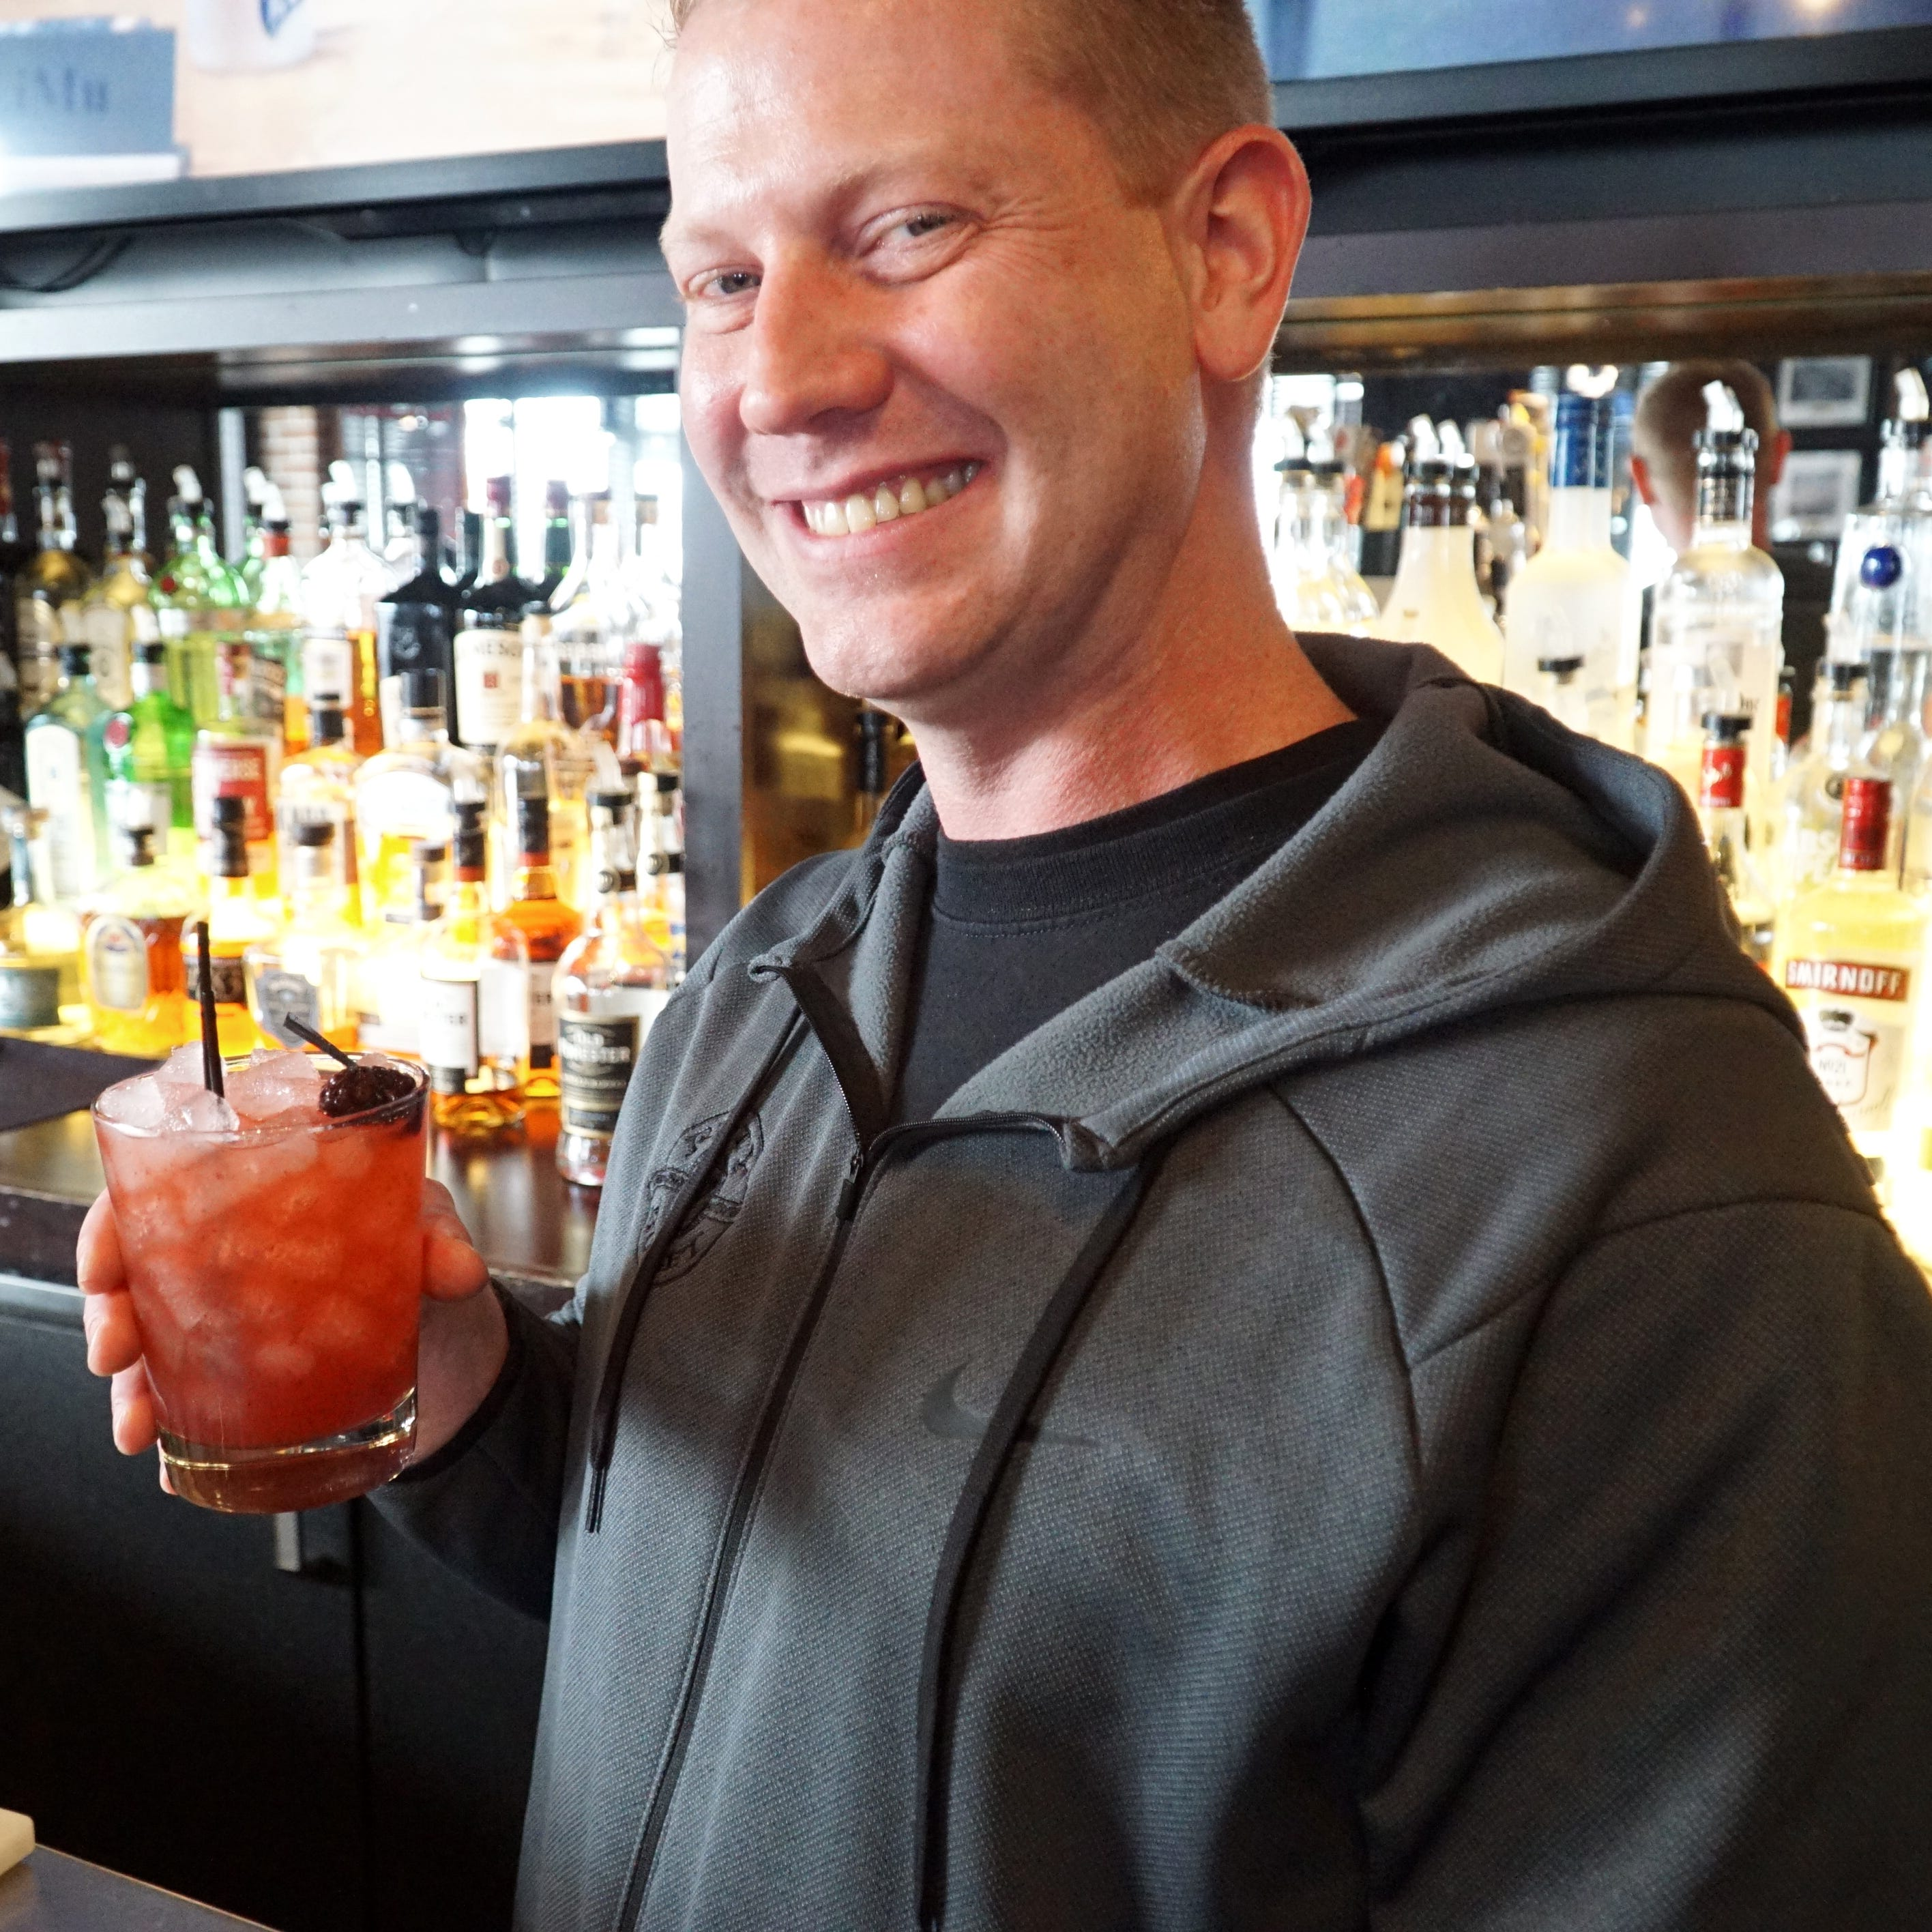 This Northville bartender's tasty cocktail has gone national